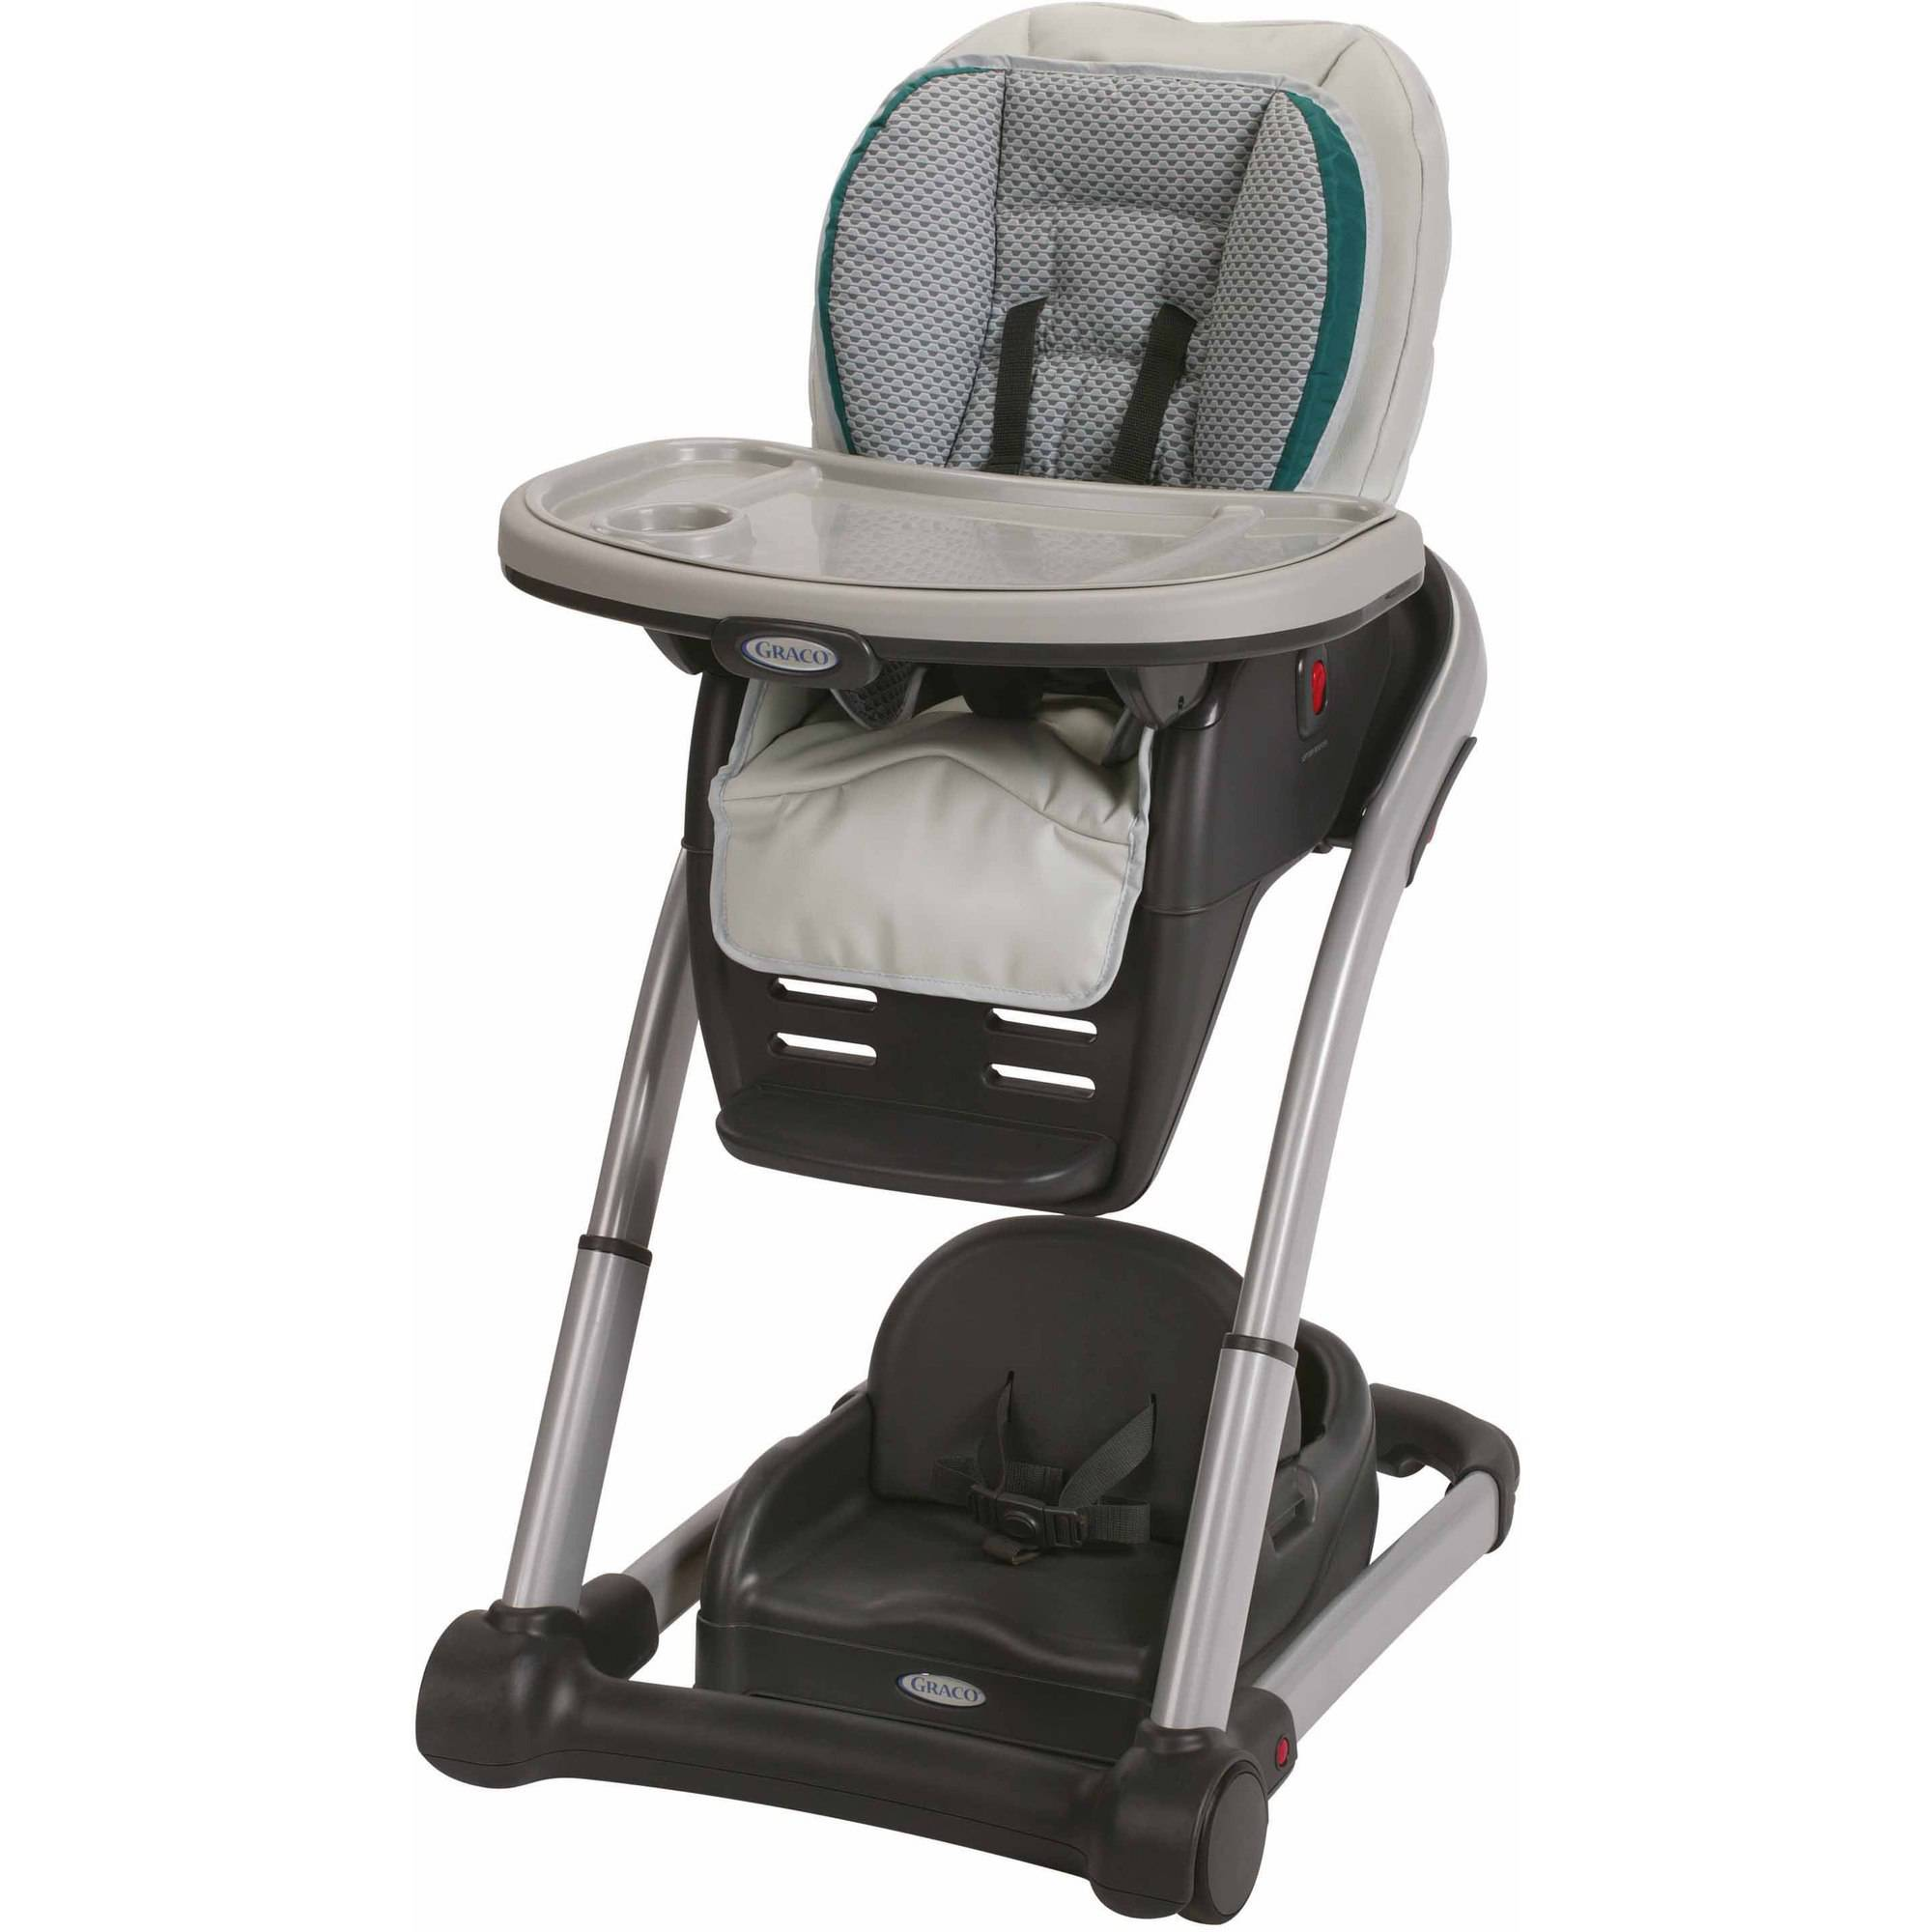 Graco Blossom 4 in 1 Convertible High Chair McKinley Walmart